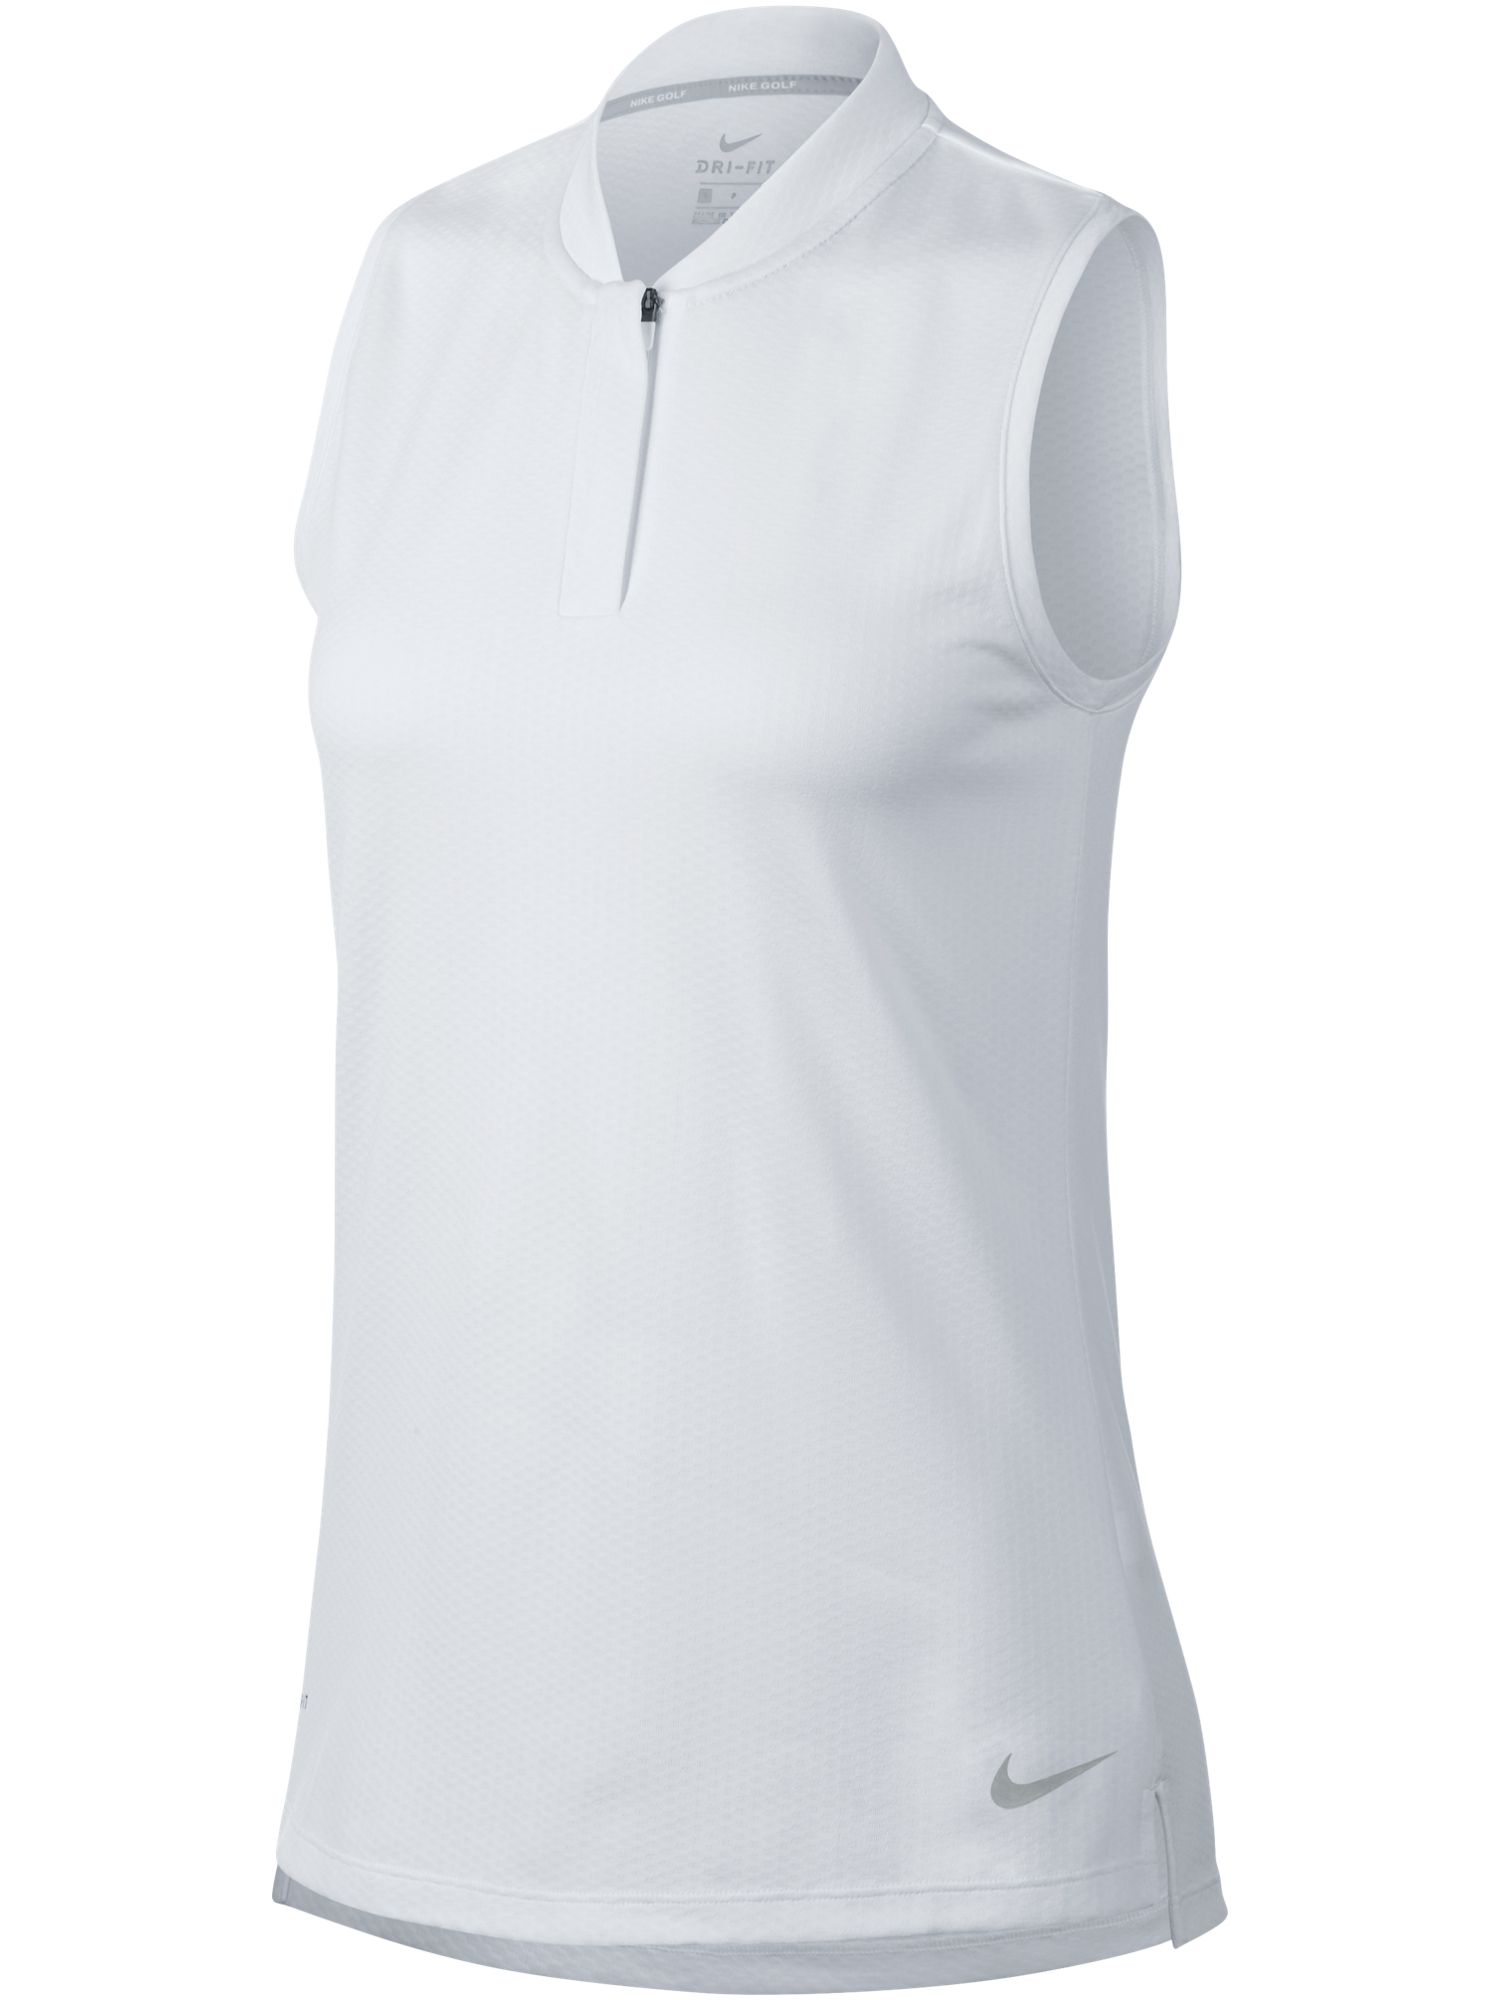 Nike Golf Dry Sleeveless Blade Polo, White